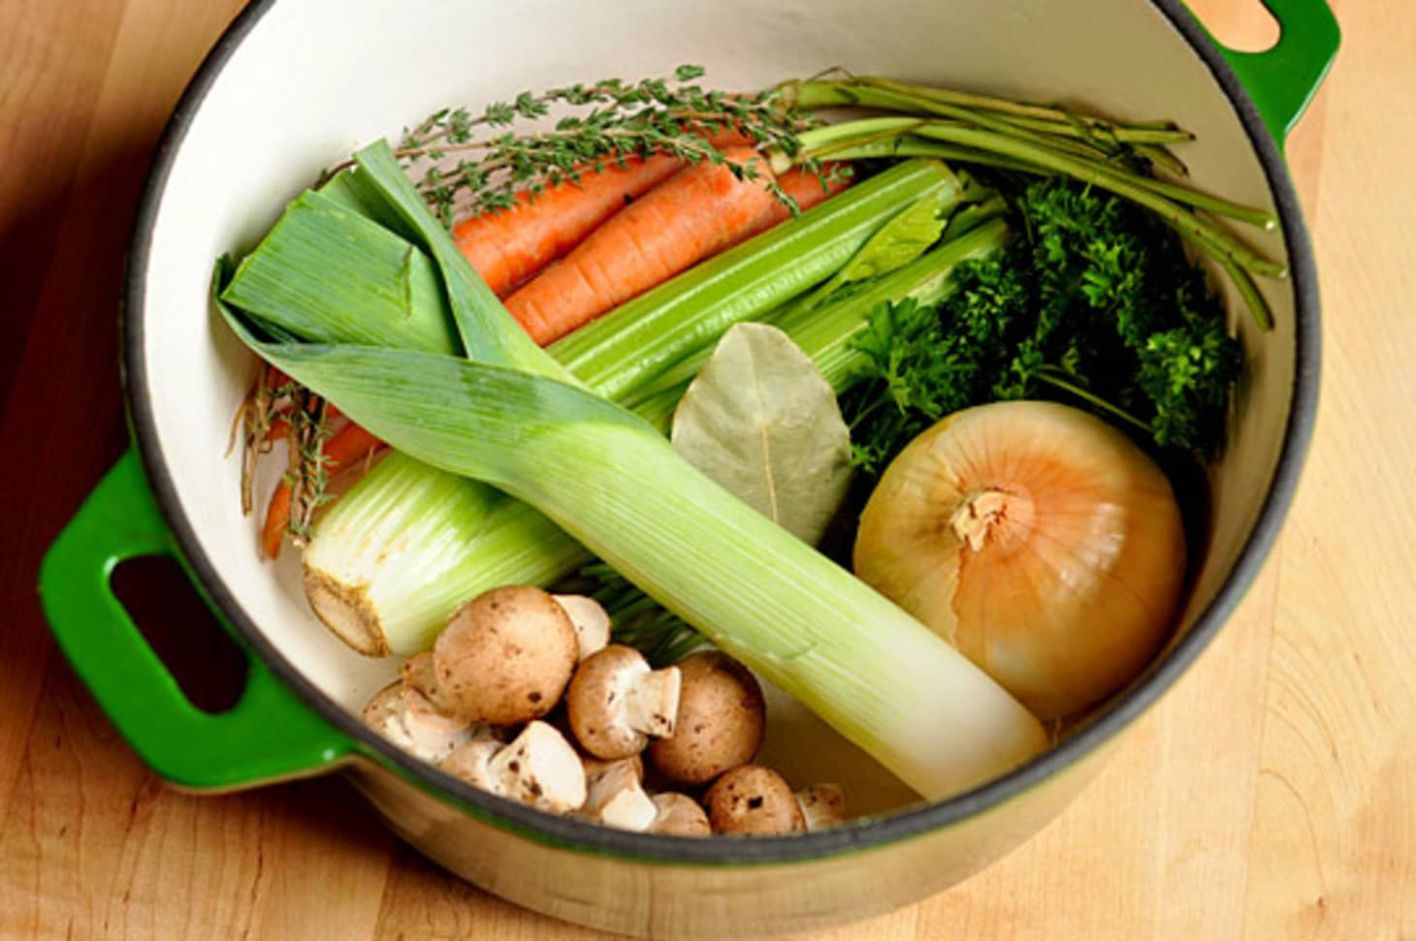 How To Make Vegetable Stock - Recipes Vegetable Broth